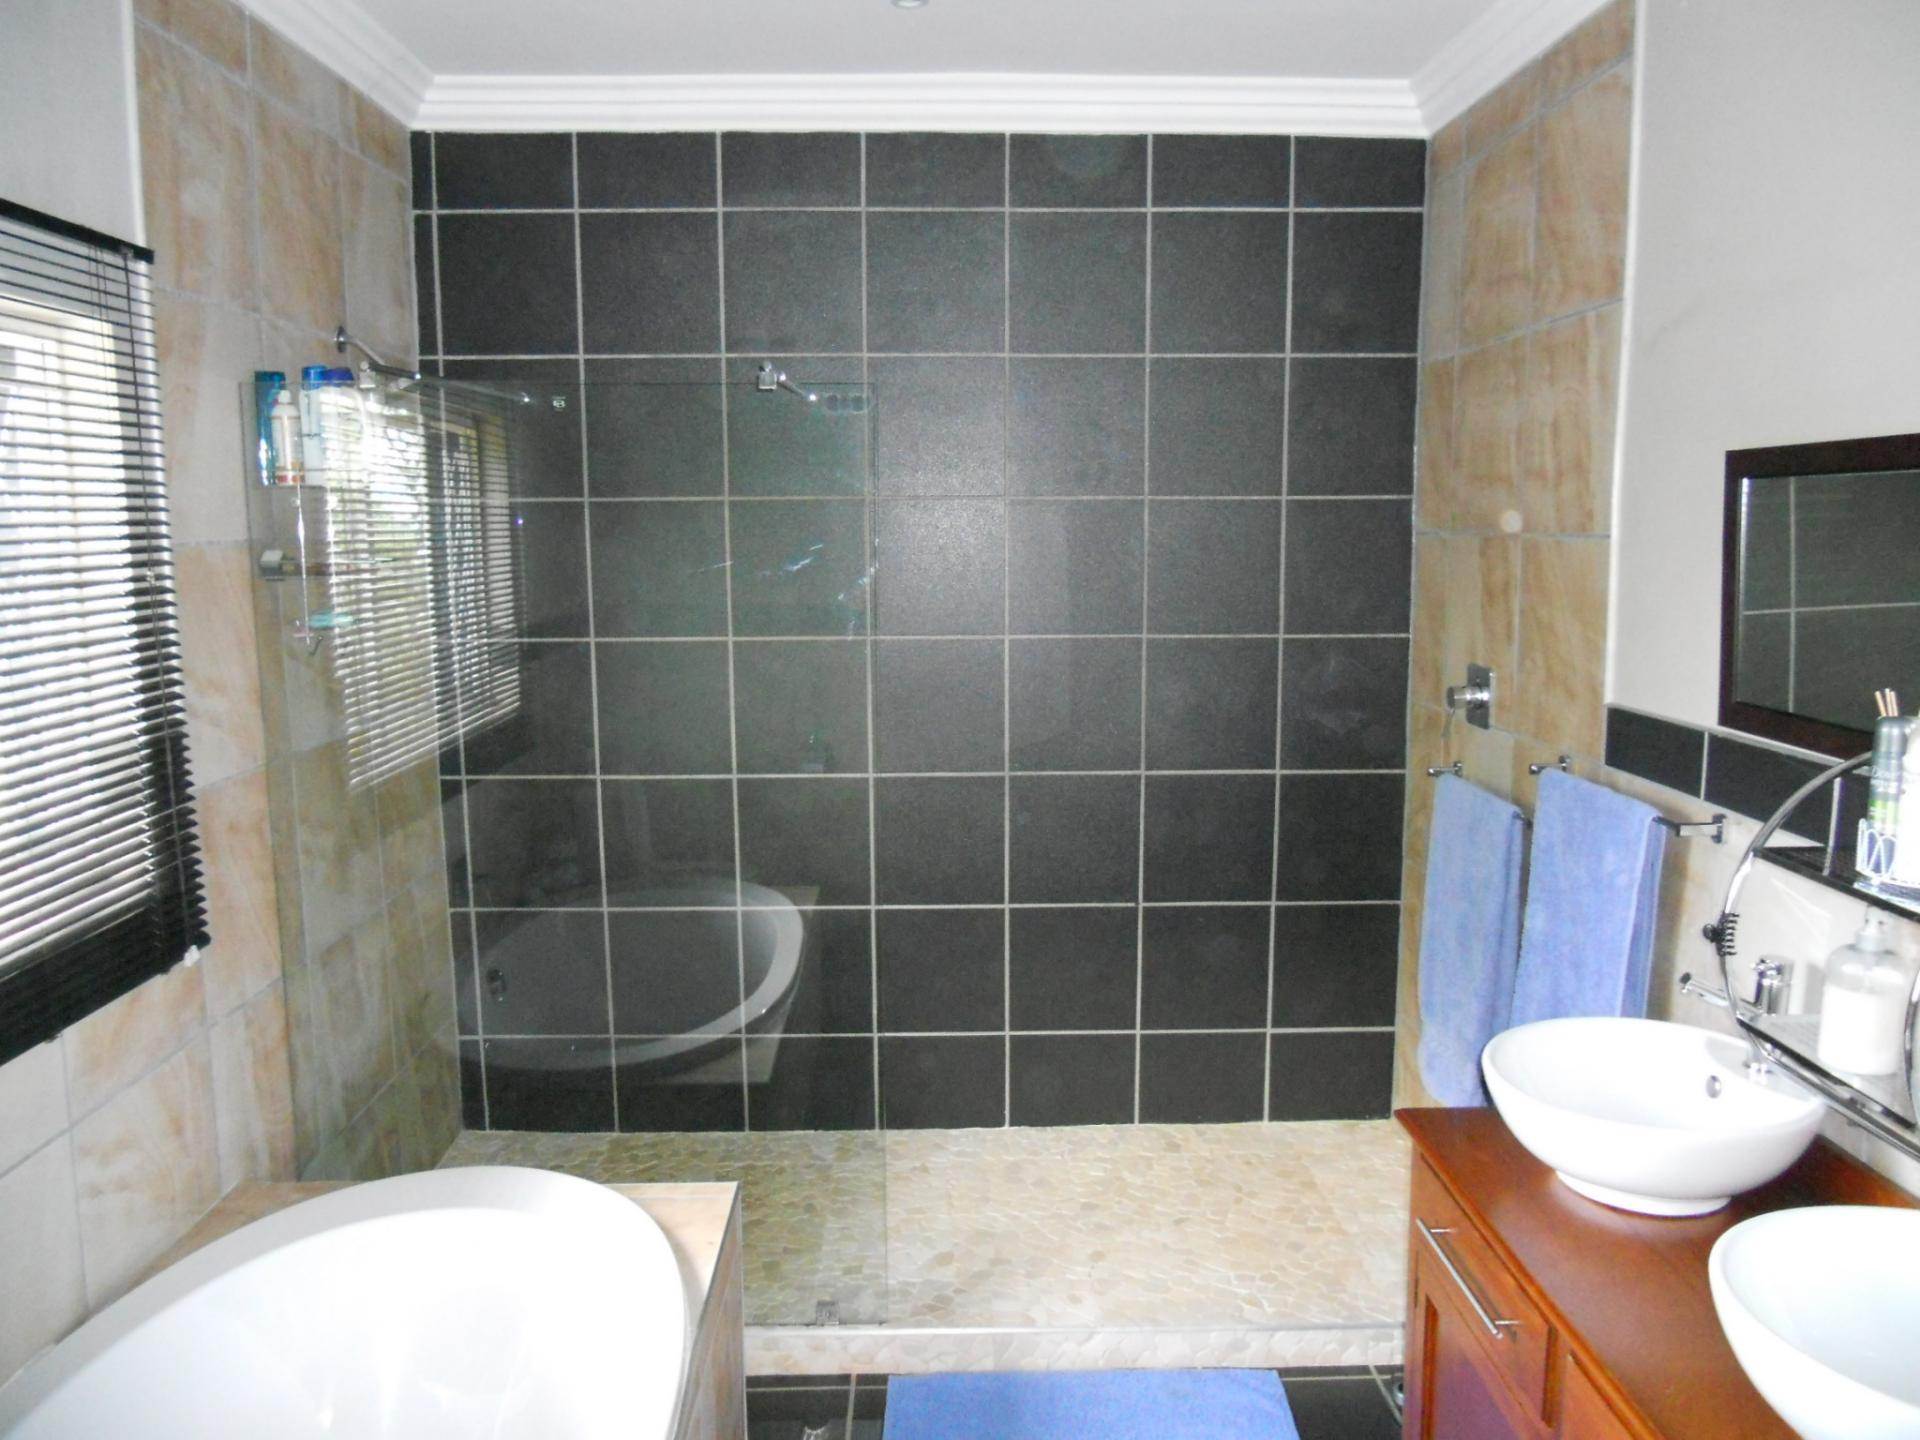 Bathroom Cabinets Kzn 3 bedroom house for sale for sale in pietermaritzburg (kzn) - home